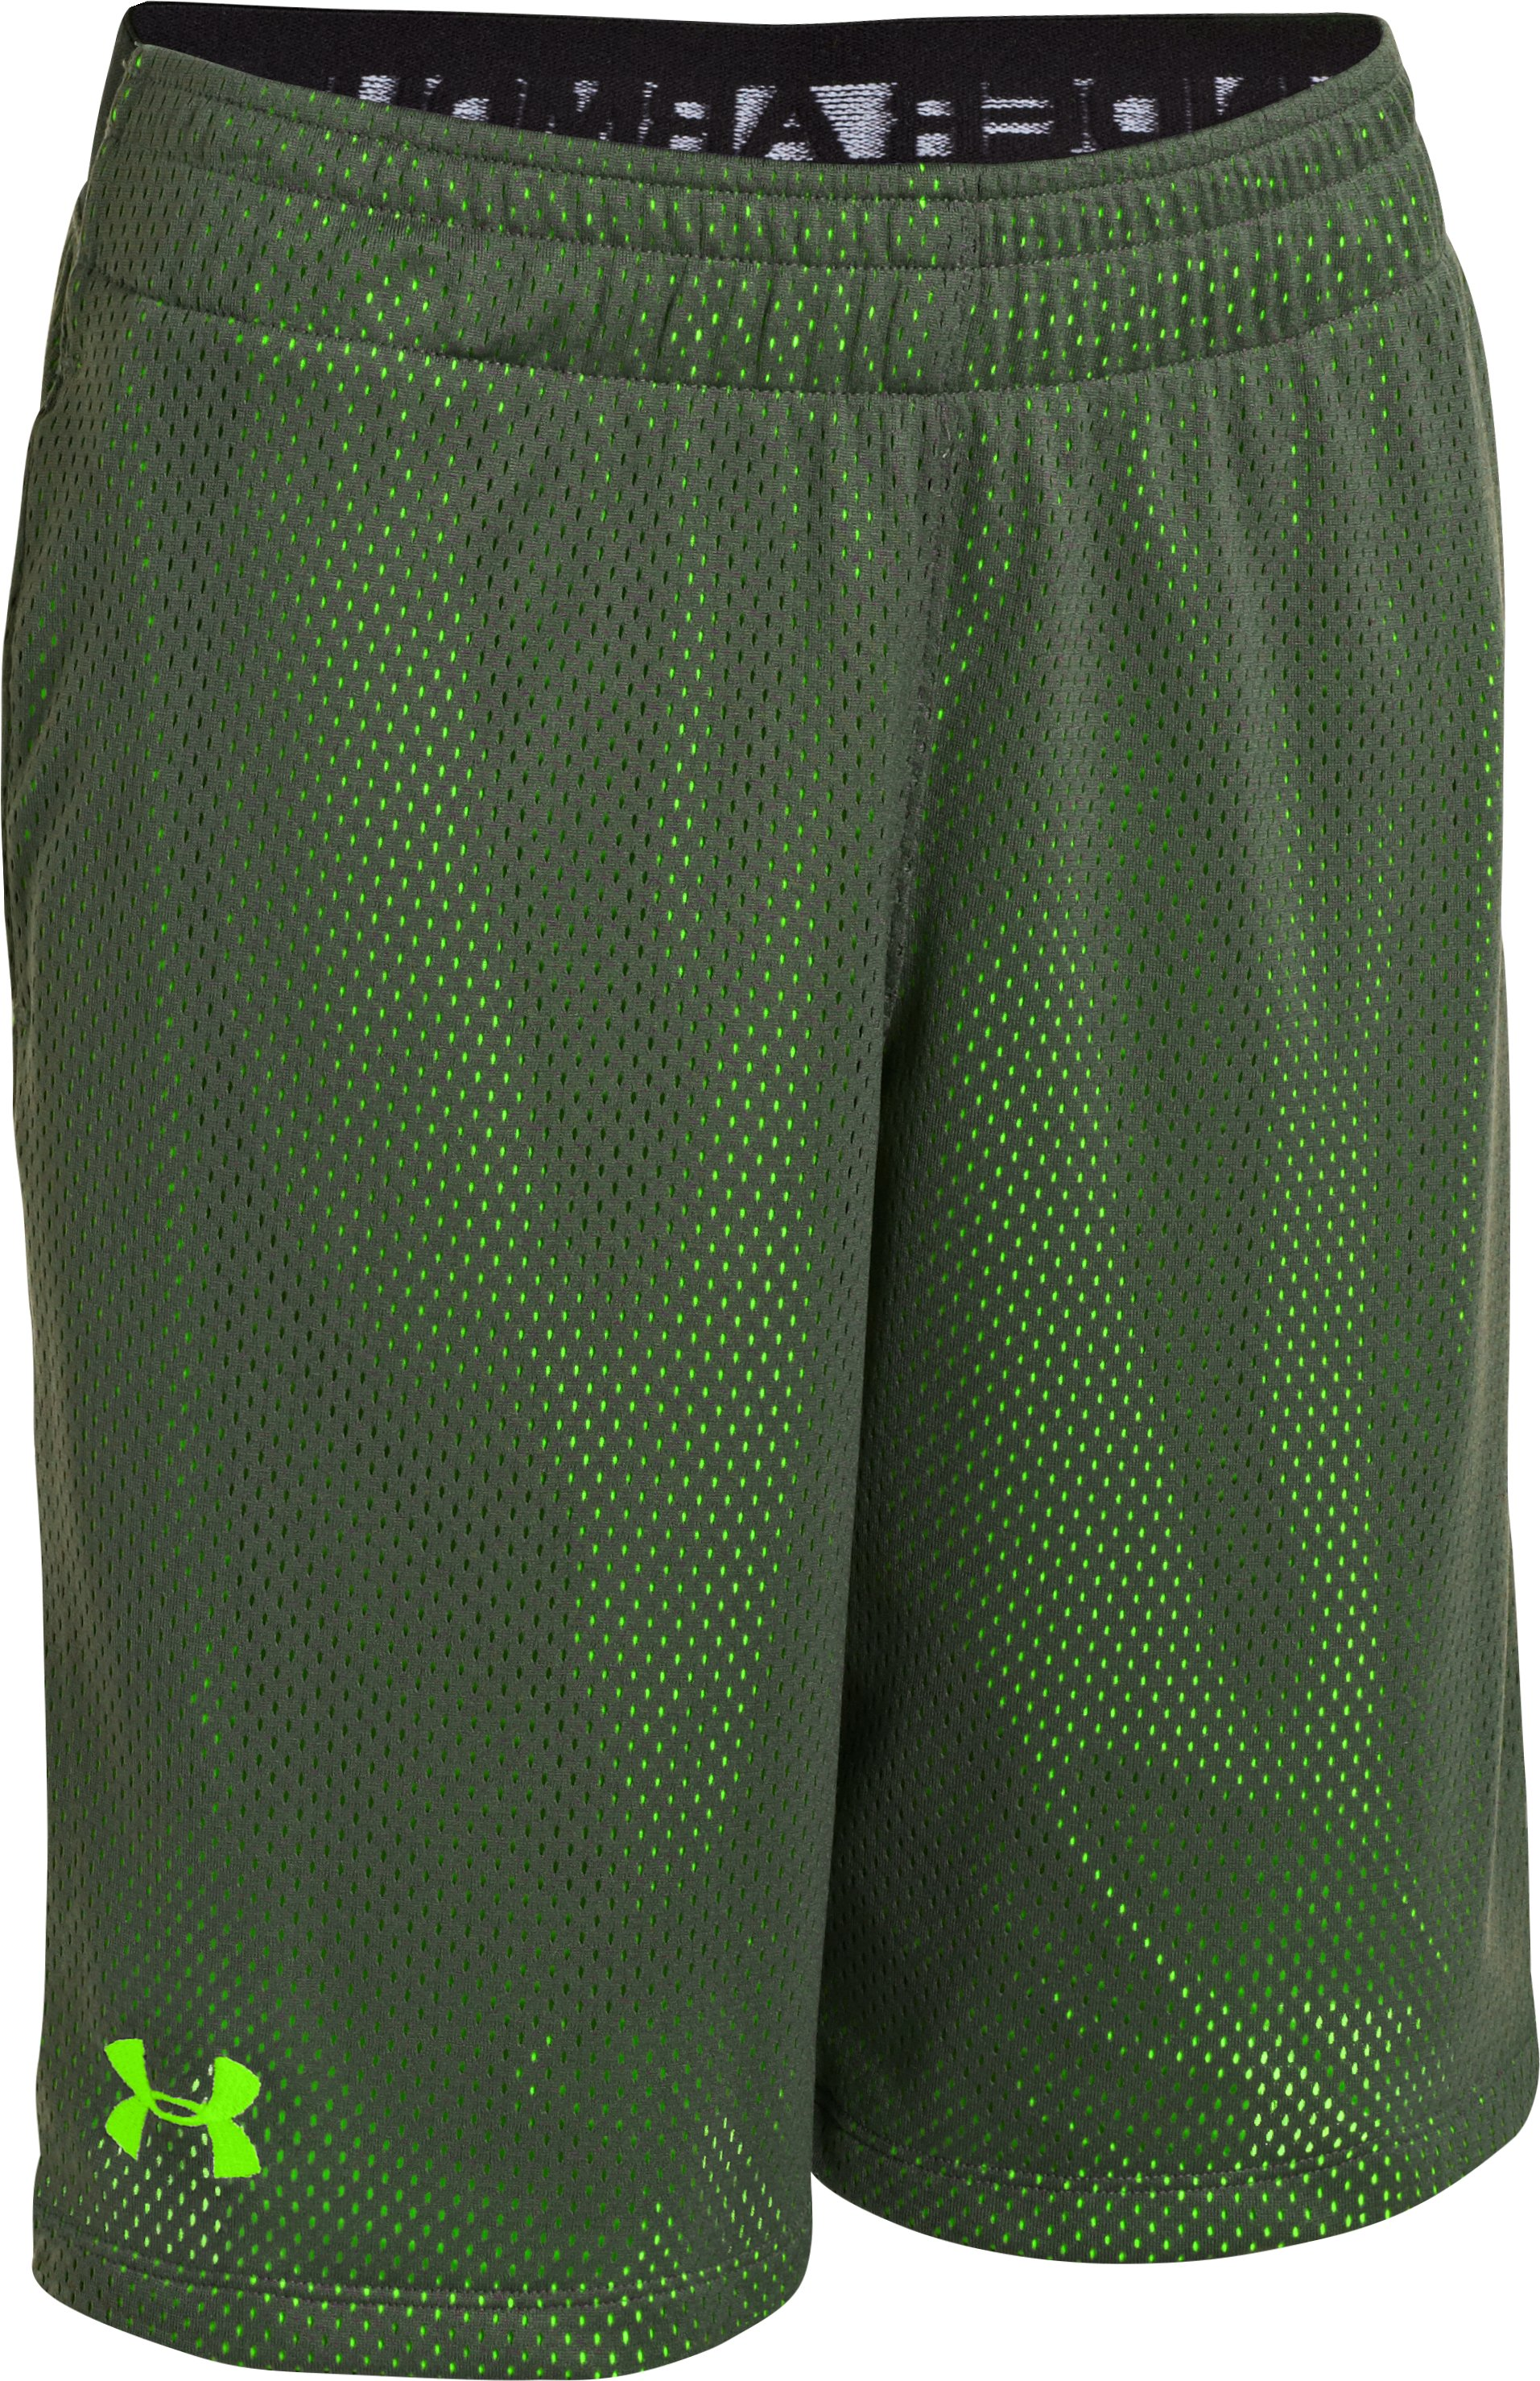 "Boys' UA Renegade 9"" Shorts, Steel"